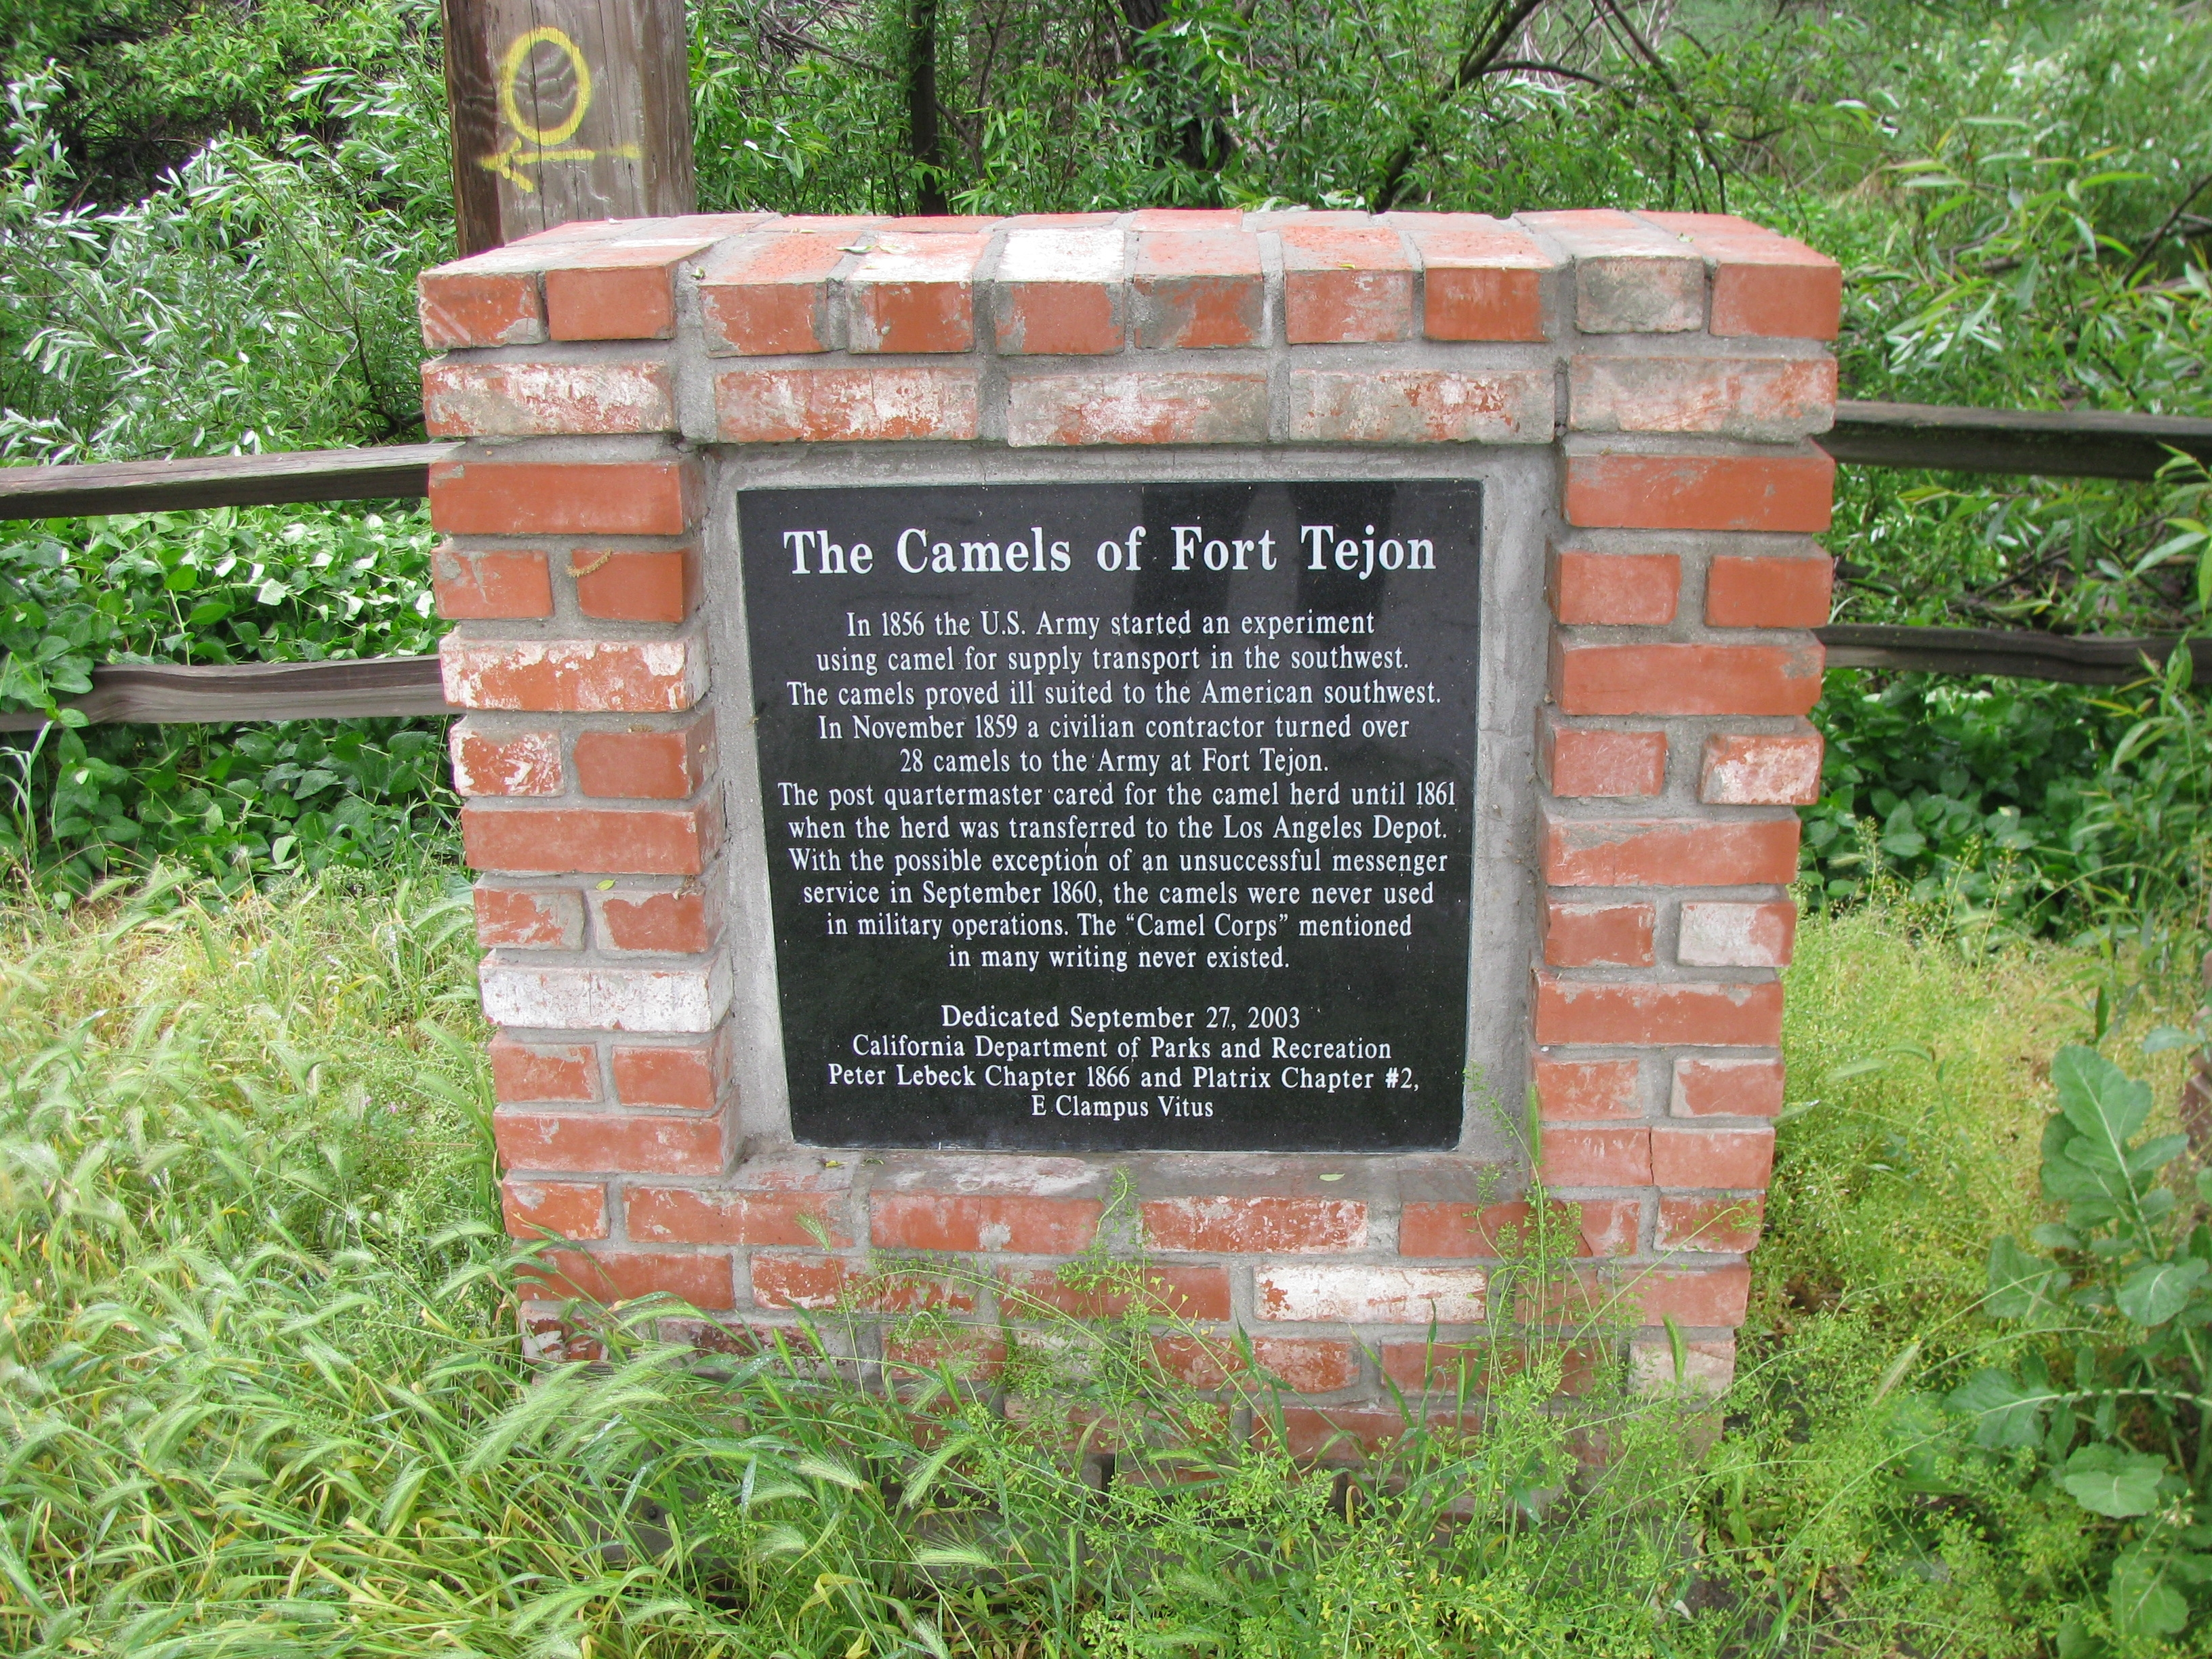 The Camels of Fort Tejon Marker